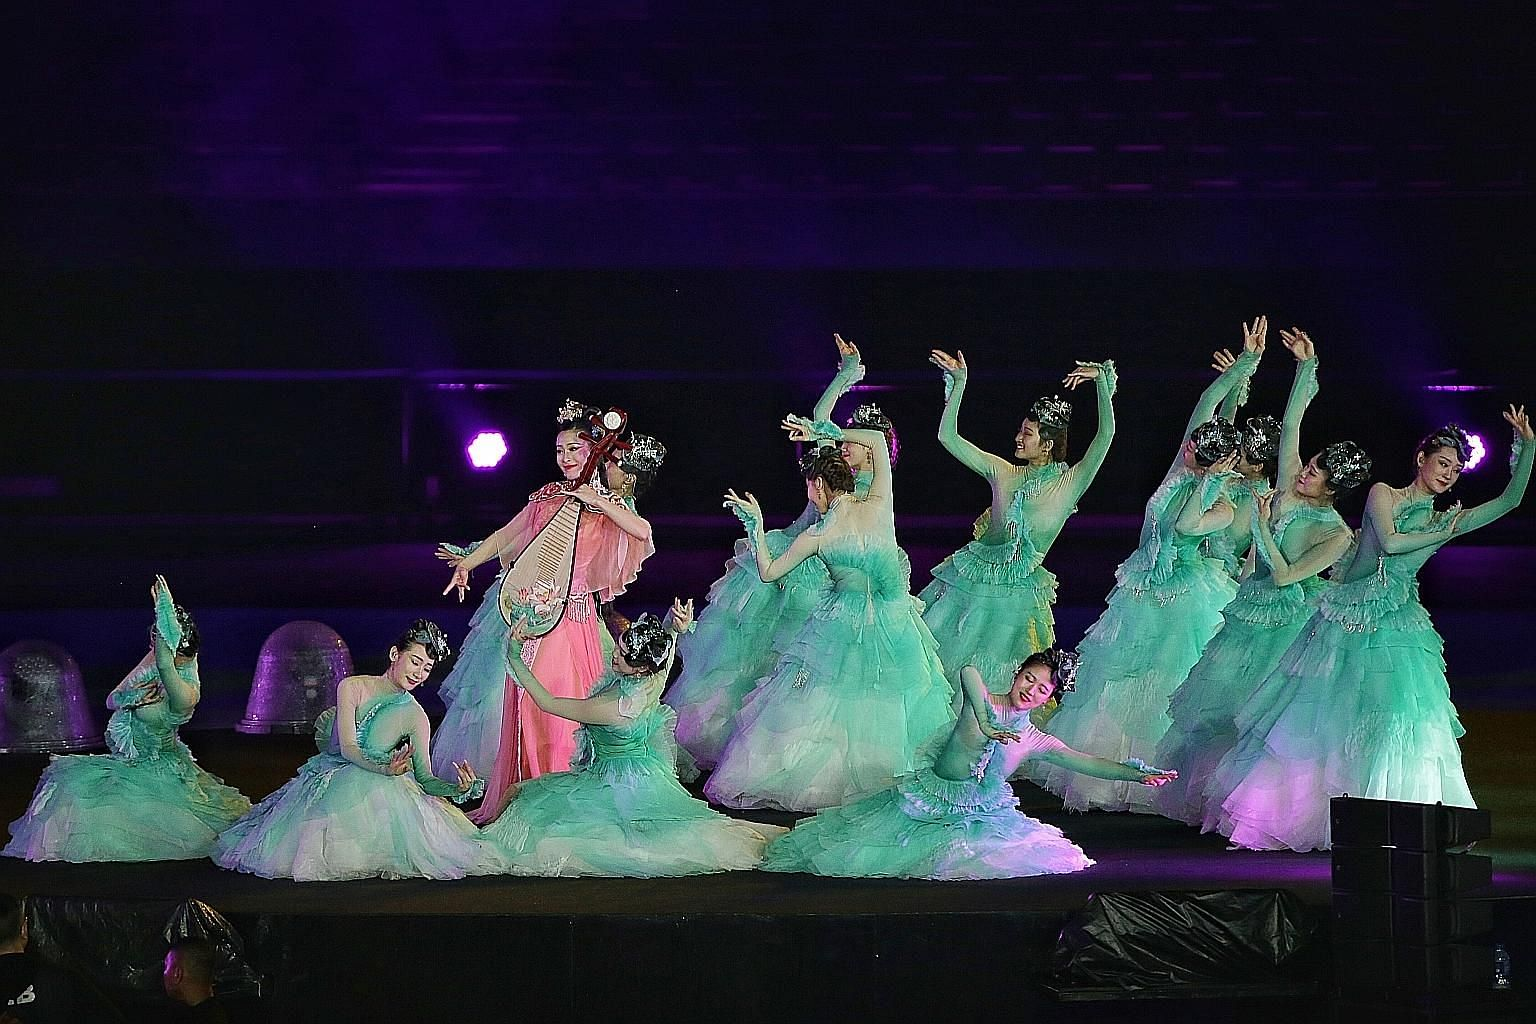 Chinese performers at the closing ceremony of the 18th Asian Games in Jakarta on Sunday, with 2022 hosts Hangzhou the third Chinese city to organise the biennial multi-sport event.